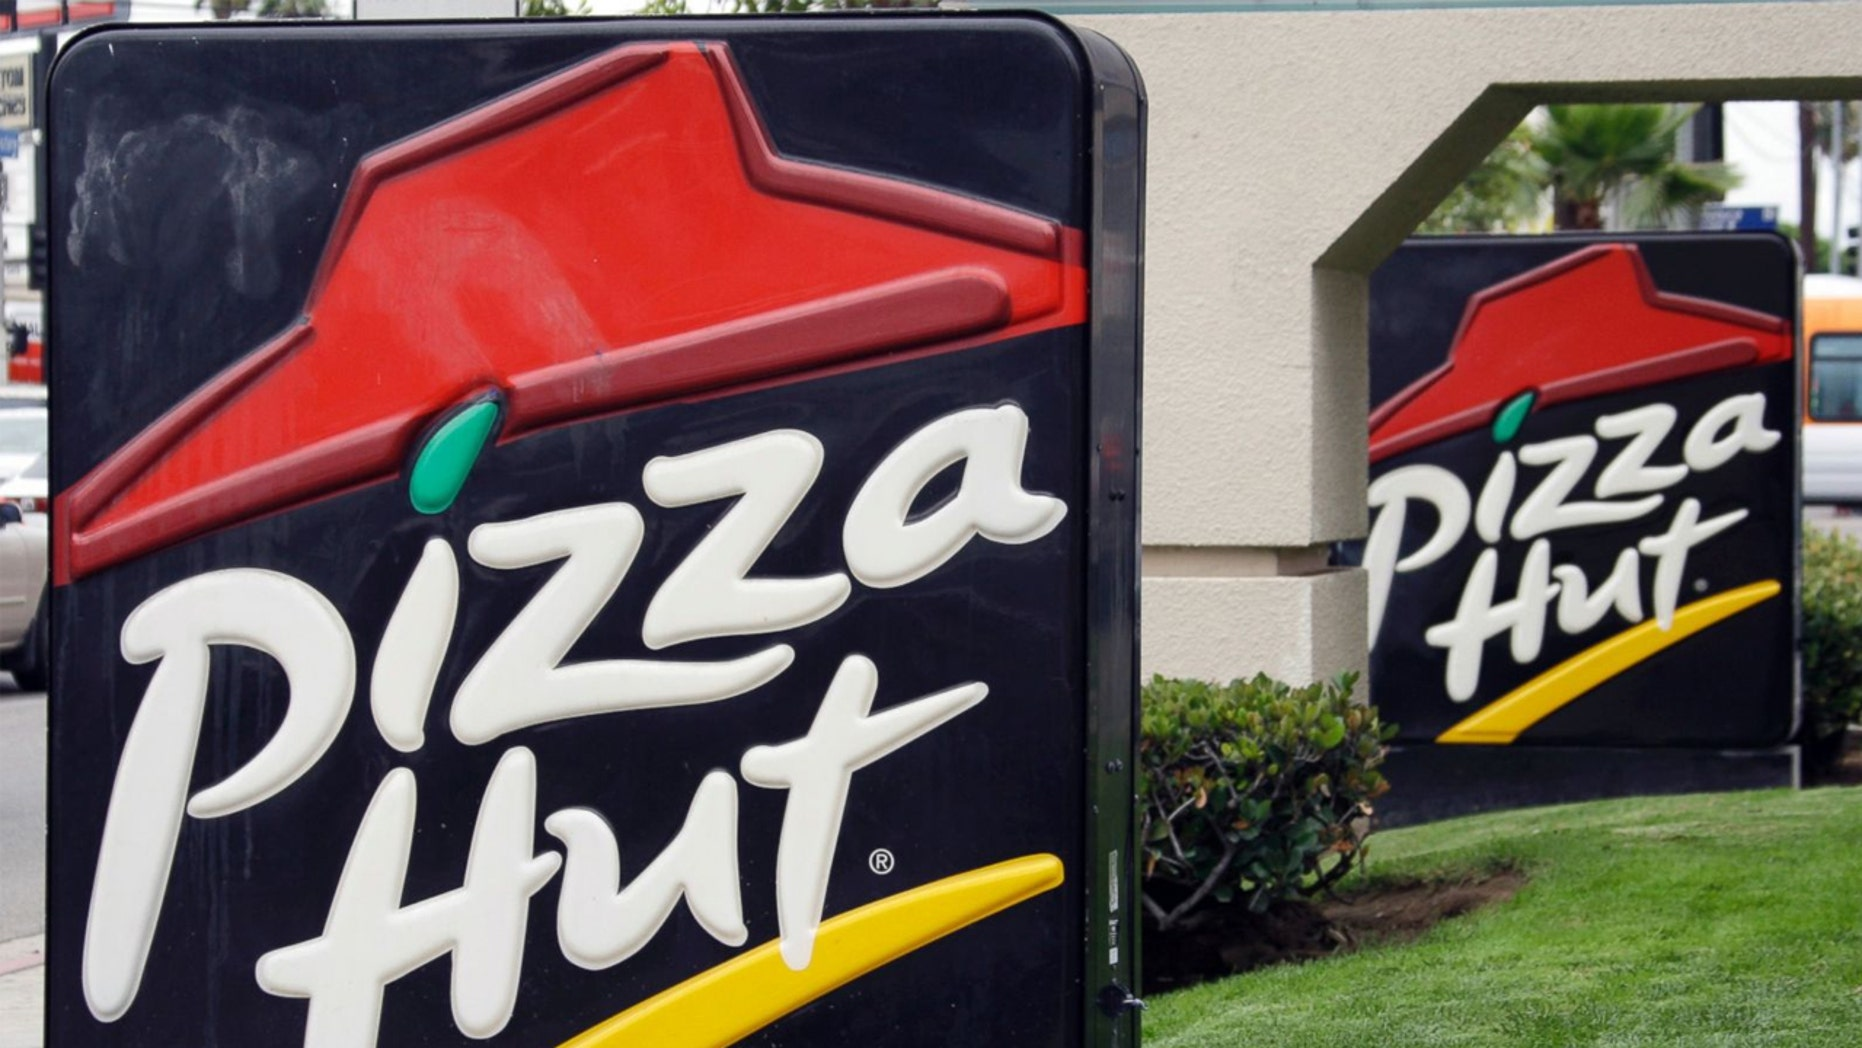 Yum CEO Greg Creed thinks he figured out why sales at Pizza Hut have gone cold: The chain needs to be more like the car-hailing service Uber.